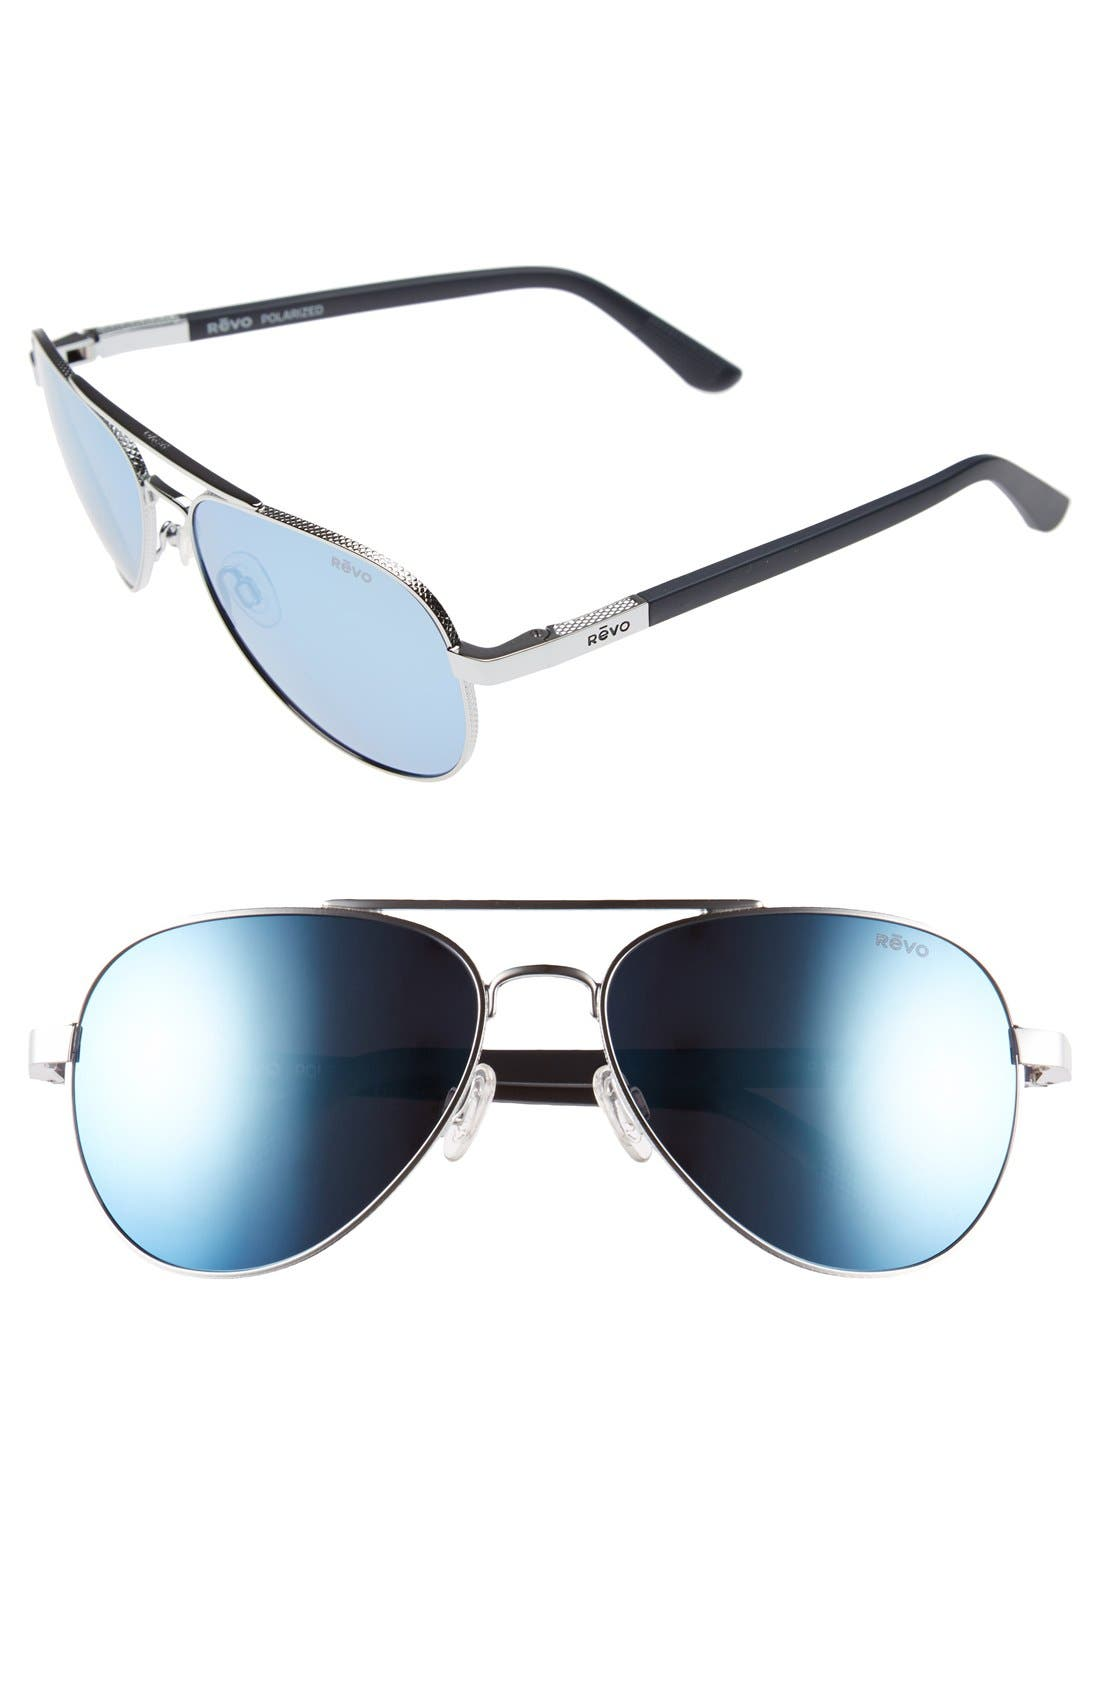 Alternate Image 1 Selected - Revo 'Raconteur' 58mm Polarized Aviator Sunglasses